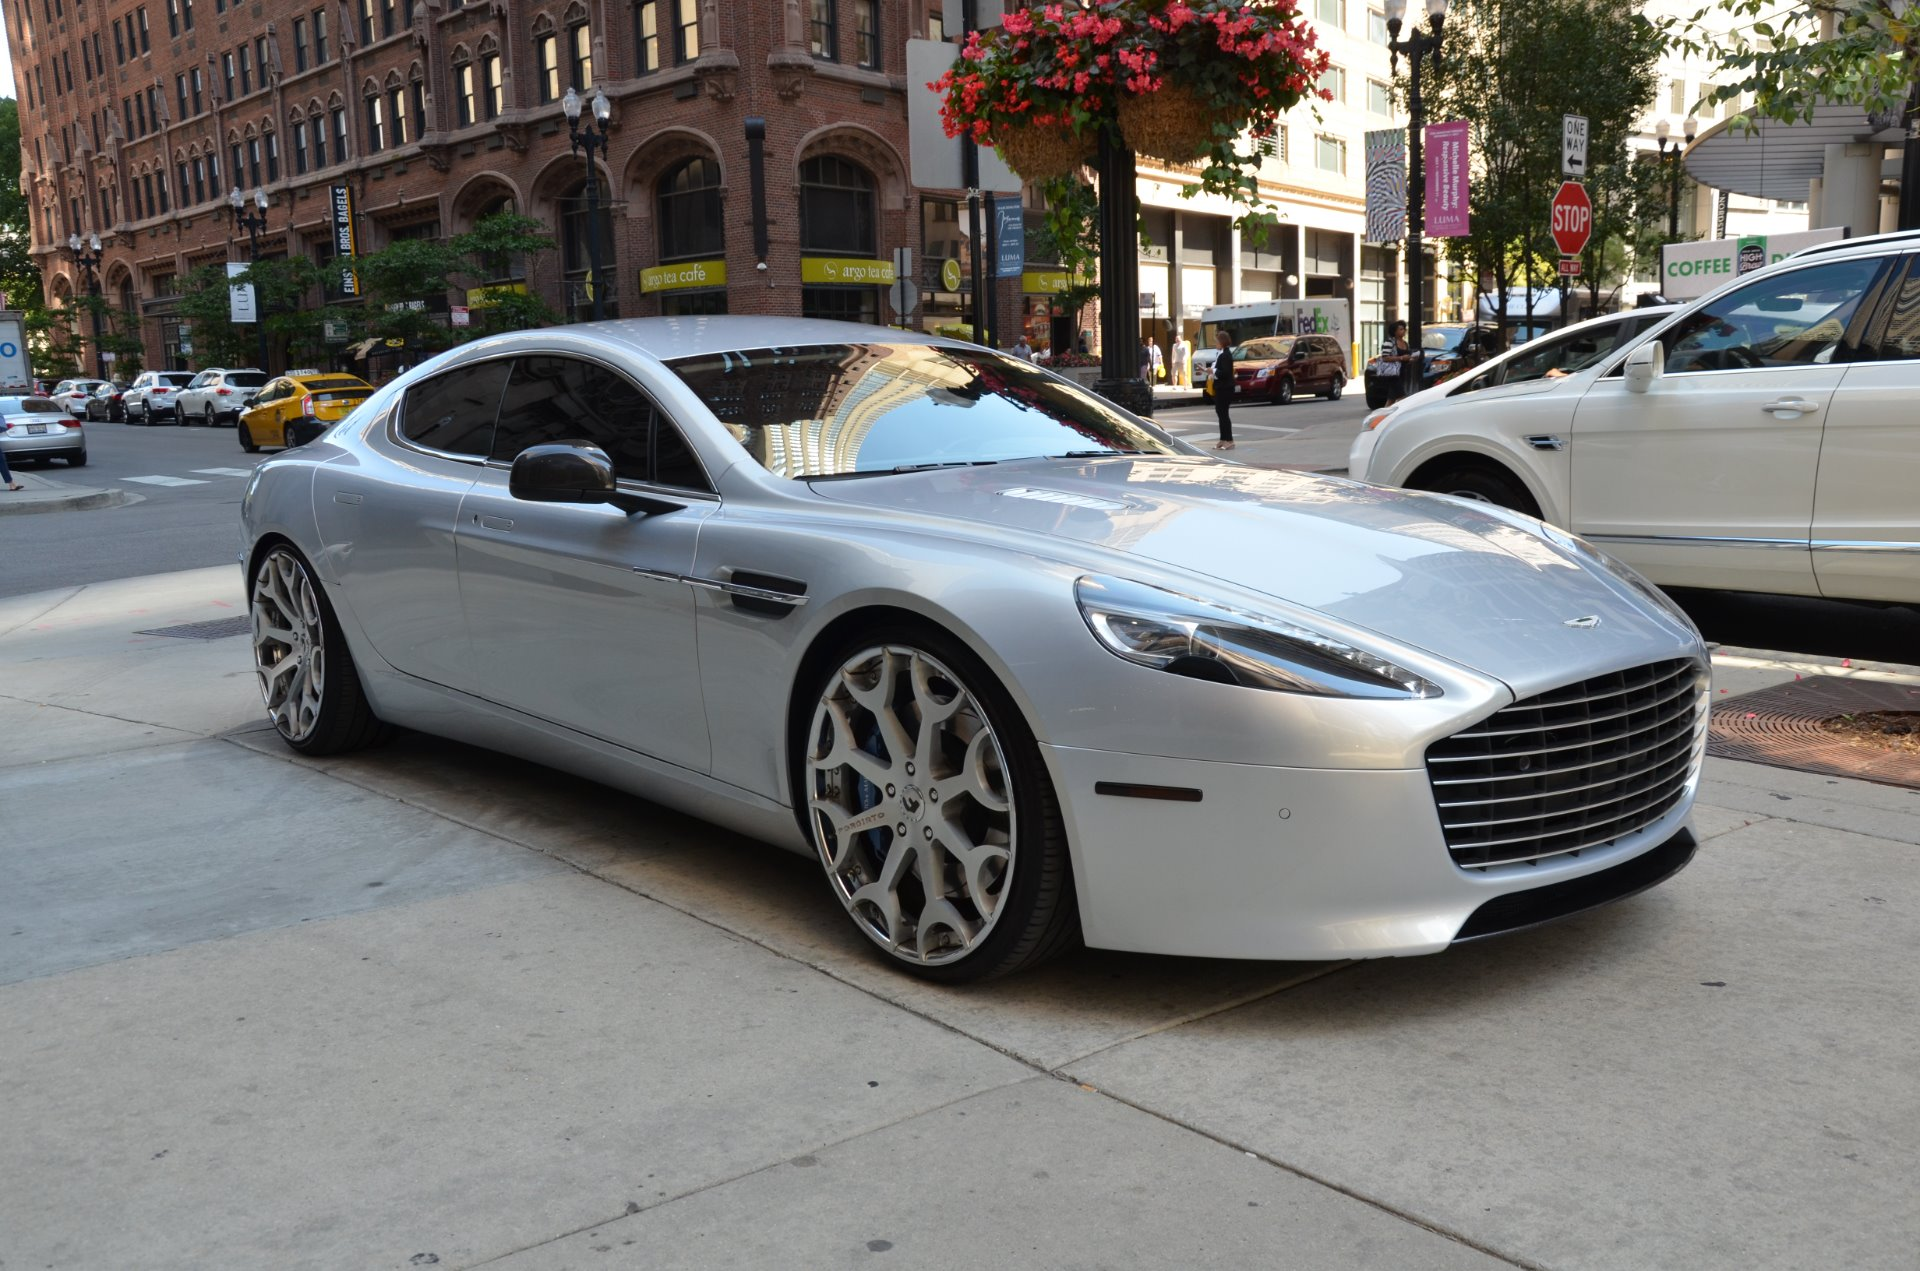 Aston Martin Rapide S Stock BB For Sale Near Chicago IL - Aston martin rapid